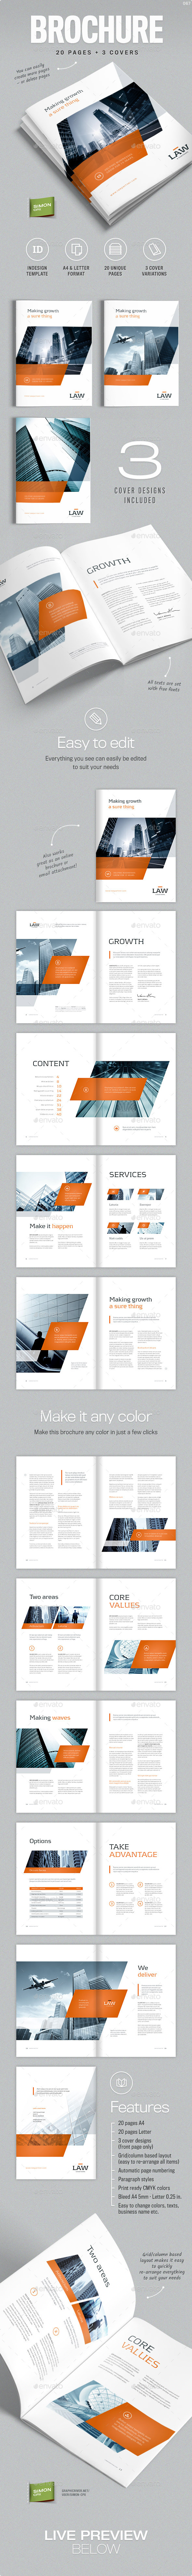 brochure-template-for-indesign